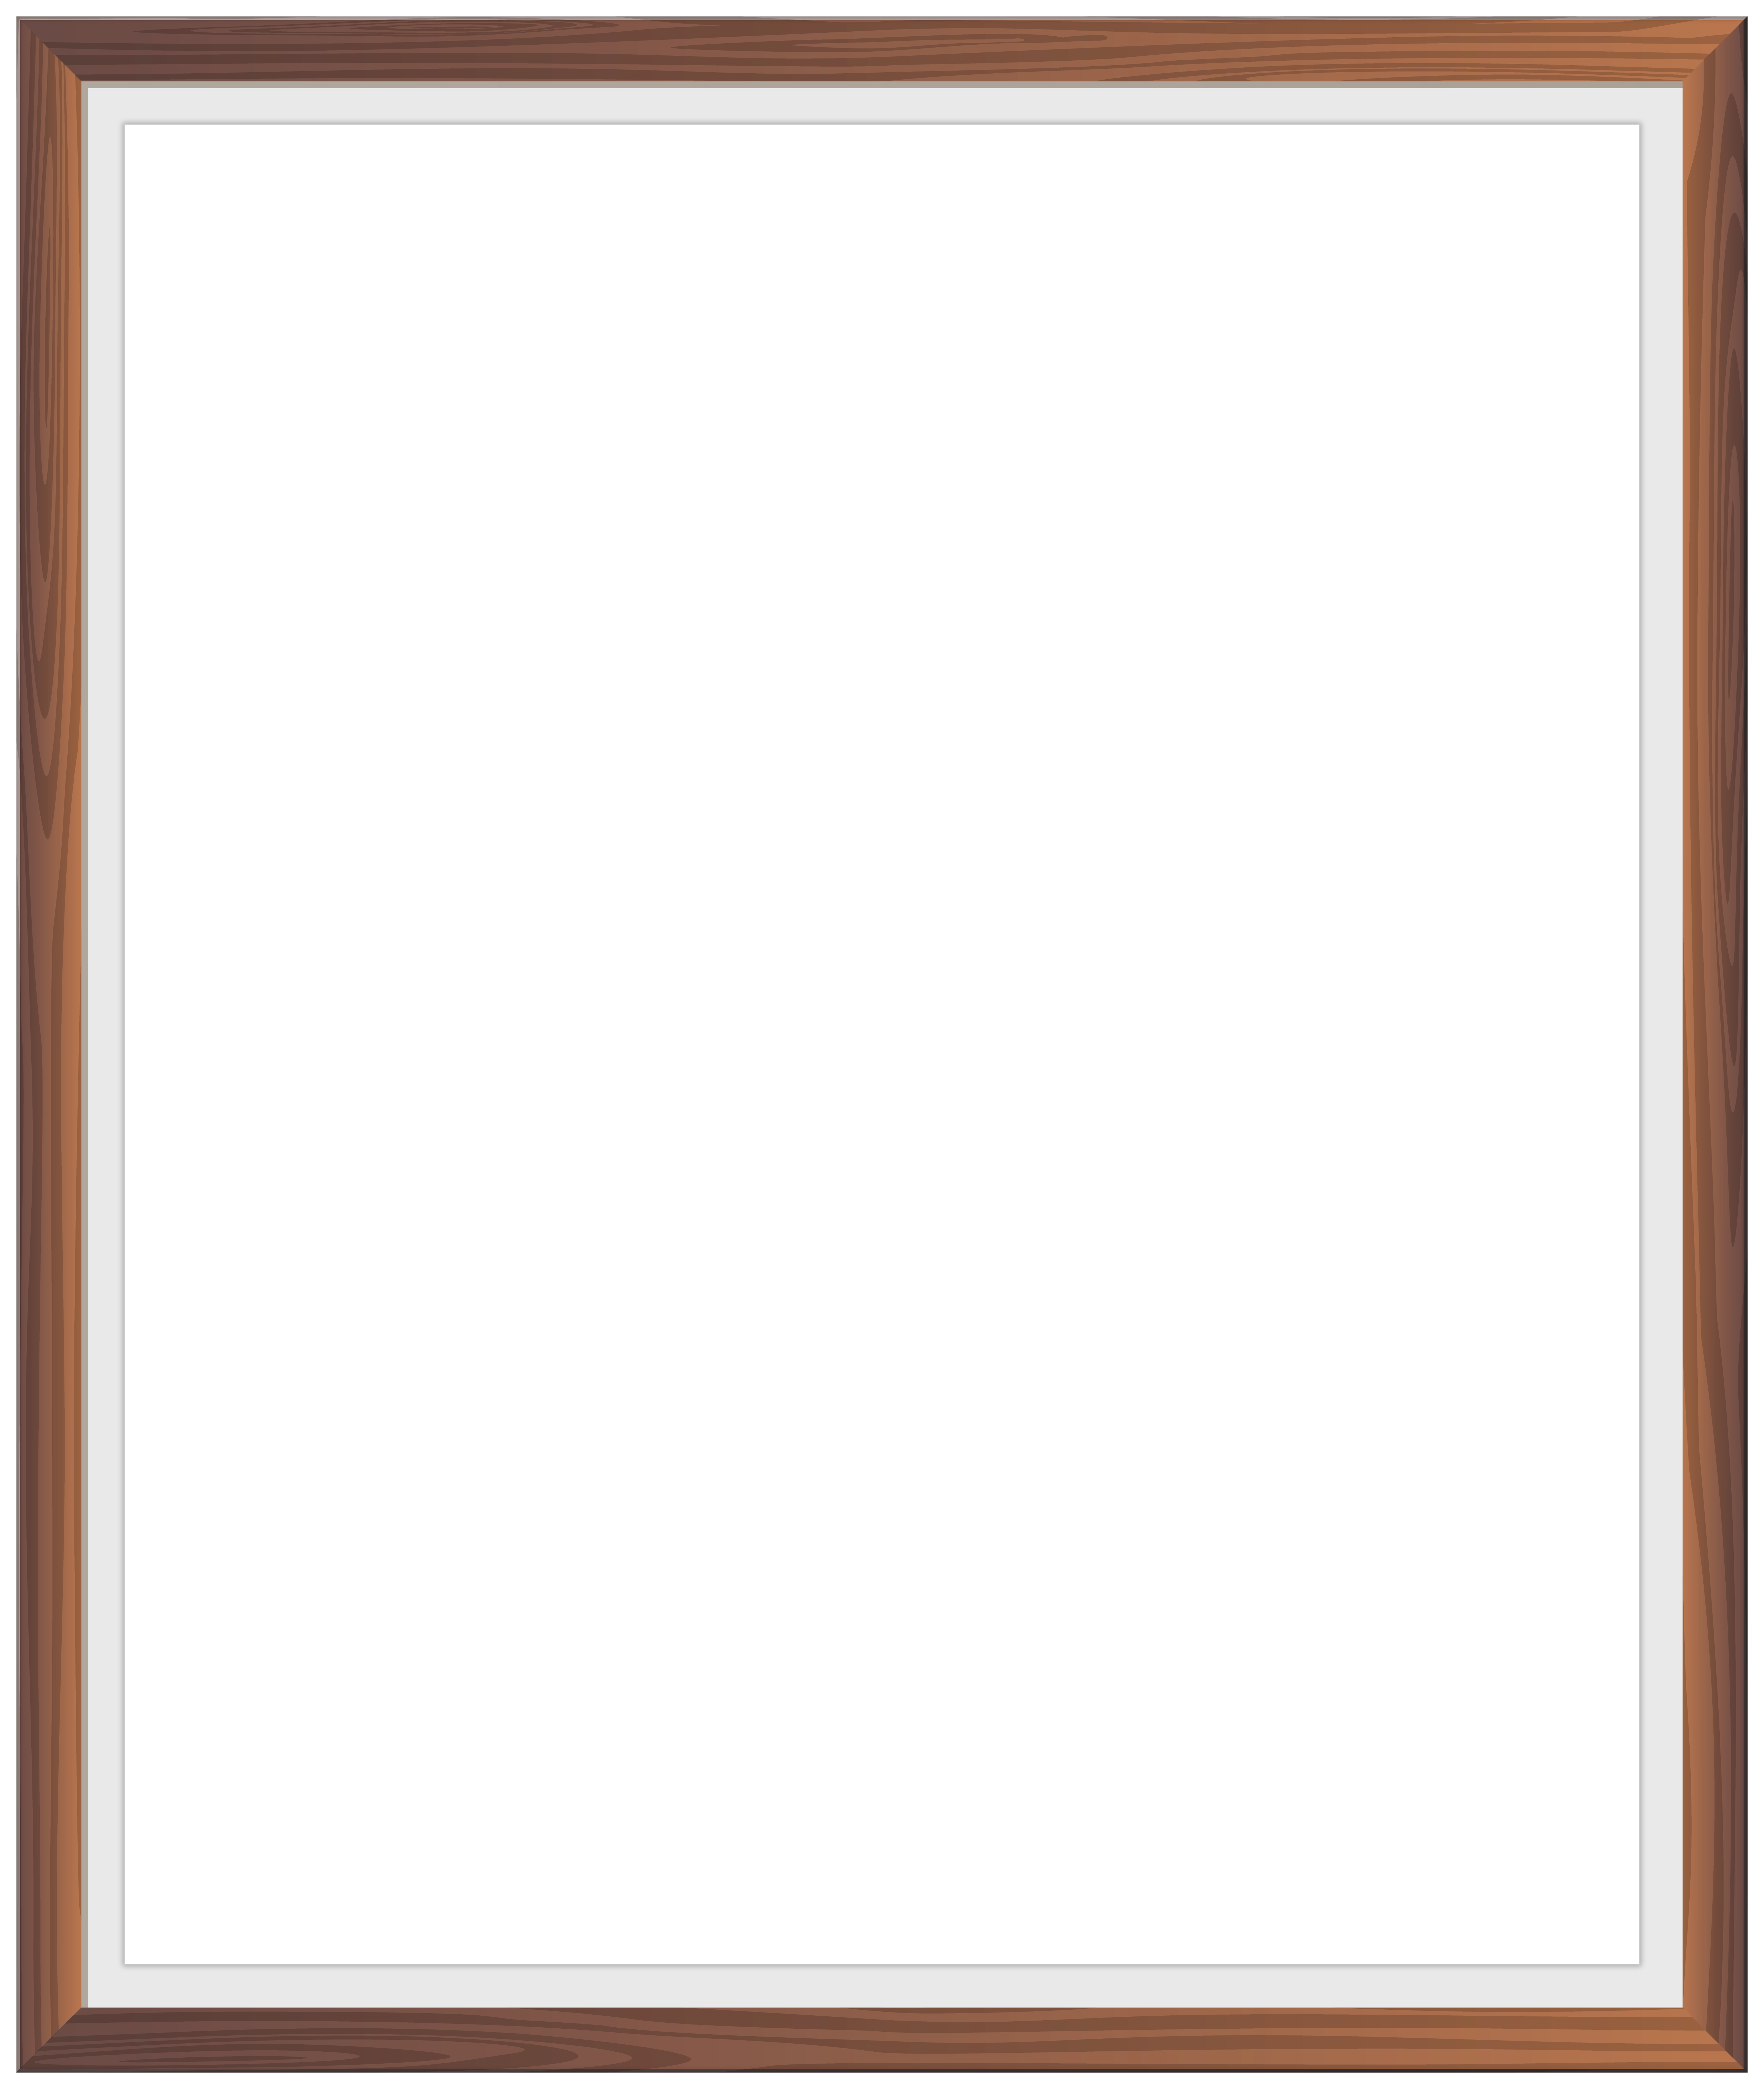 Simple Wooden Frame Png Clip Art Image Gallery Yopriceville High Quality Images And Transparent Png Free Clipart White Vinyl Upvc Brown And Grey